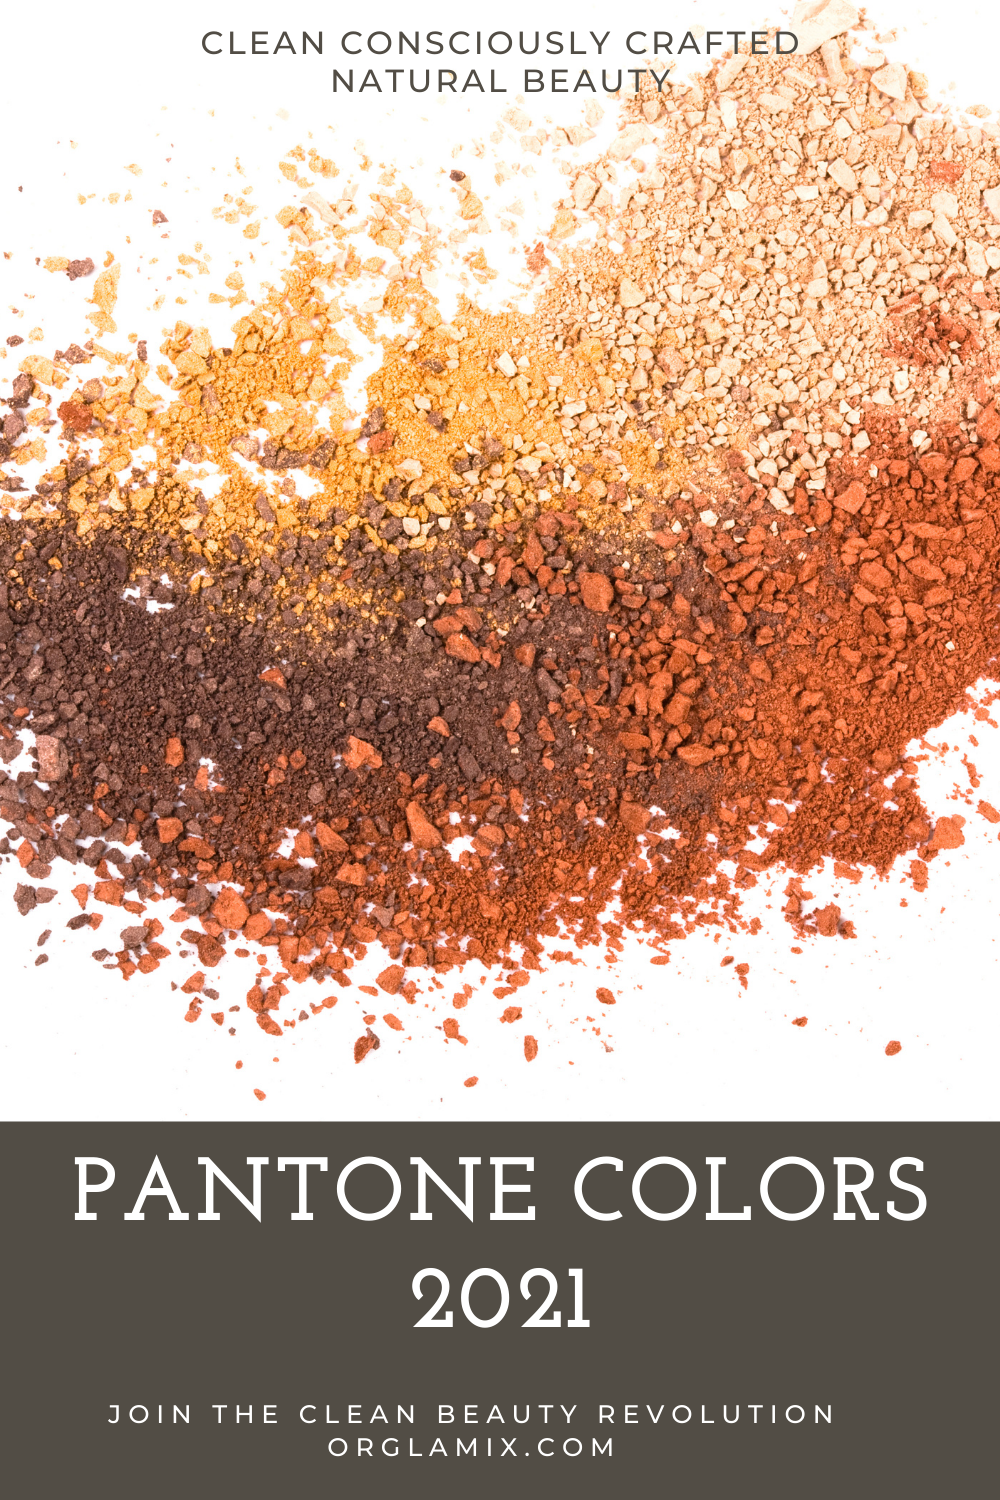 New Pantone Colors In 2021 | Orglamix